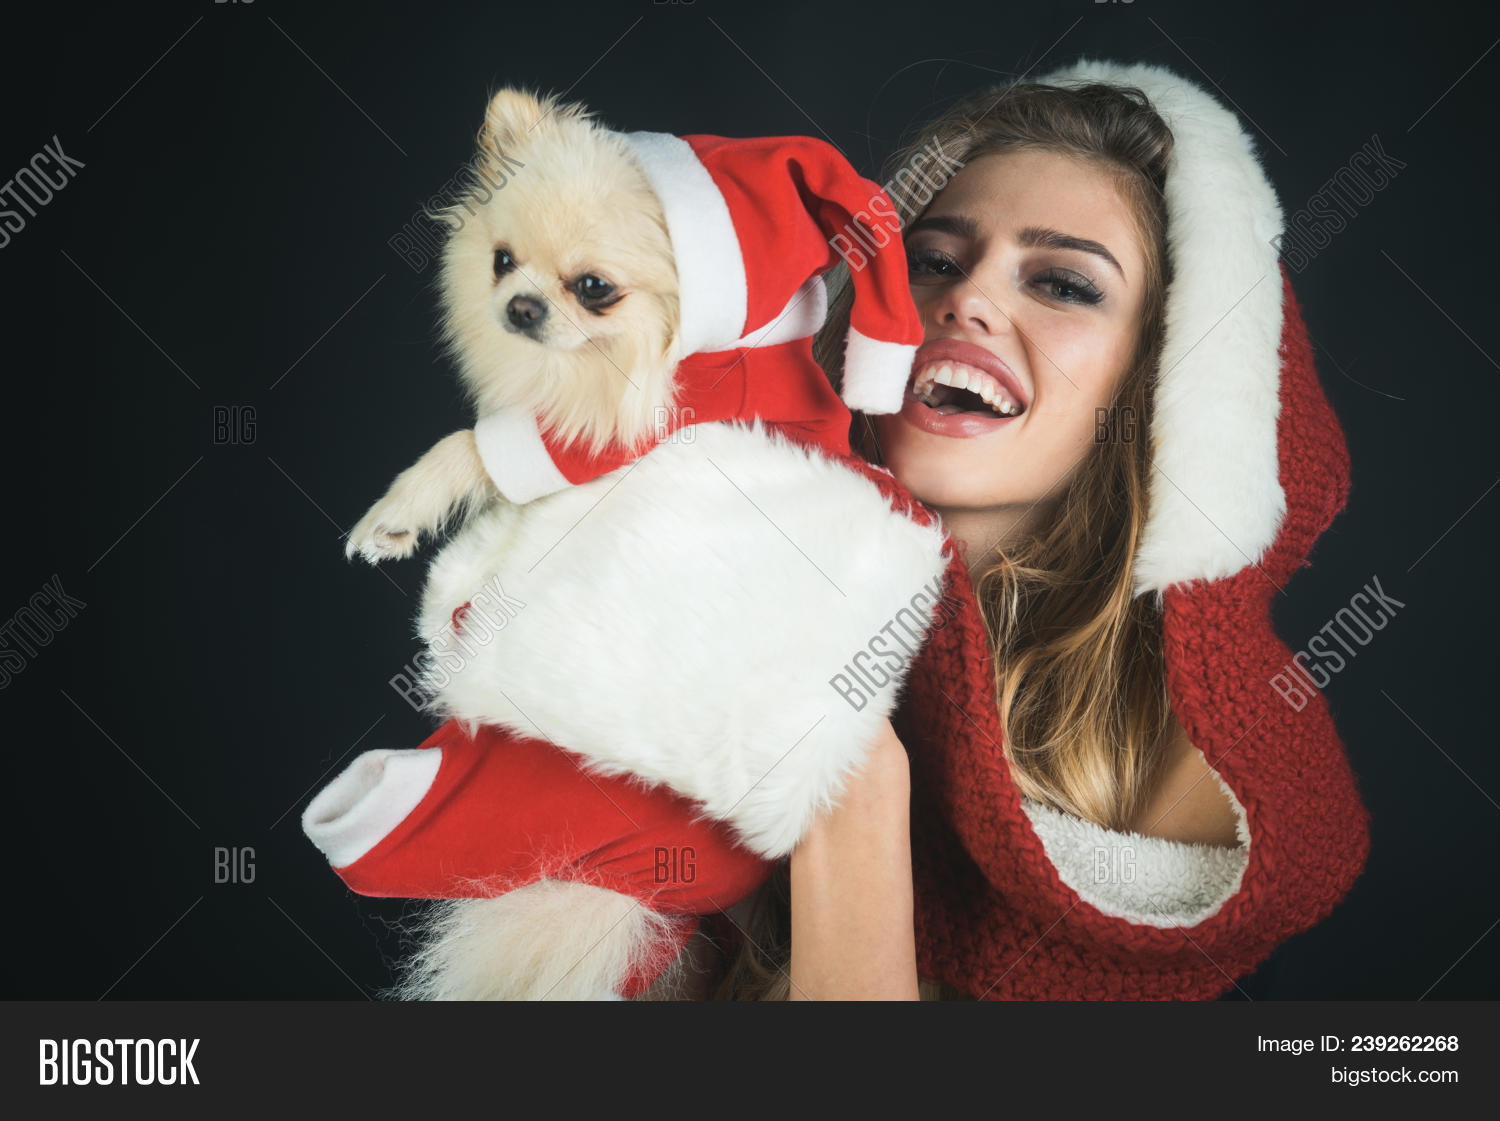 5fb308b65b1 Christmas friends - beautiful smiling woman in Santa hat with cute puppy in  Christmas dressed as Santa Claus. Funny woman in Santa hat with pet on  Christmas ...